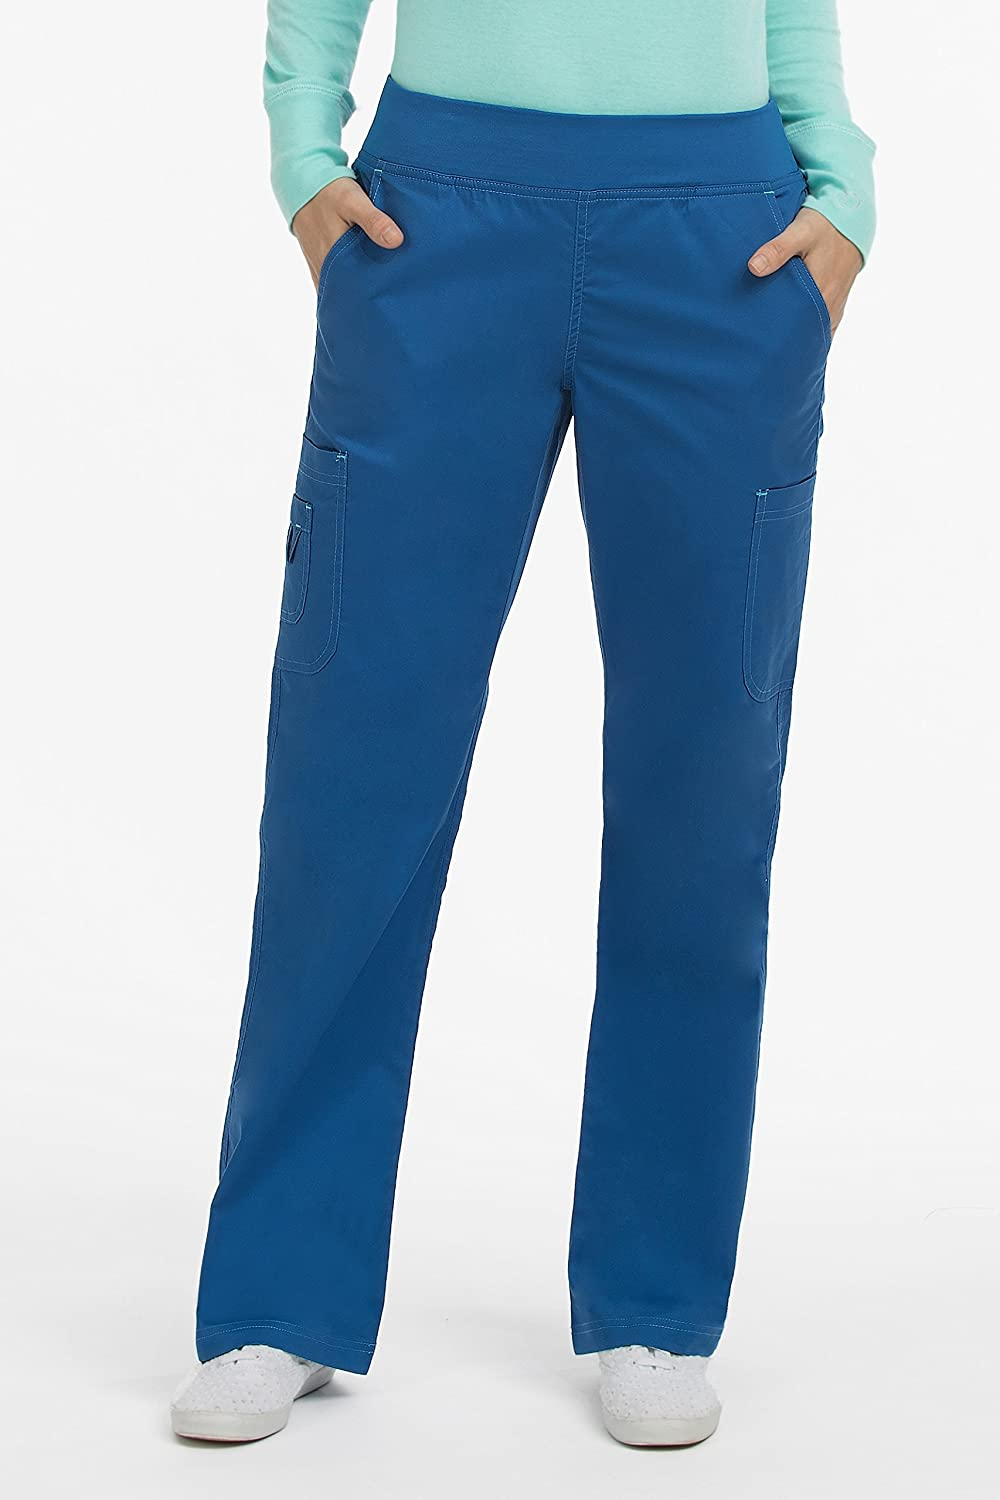 Med Couture Womens Scrub Bottoms Image 1